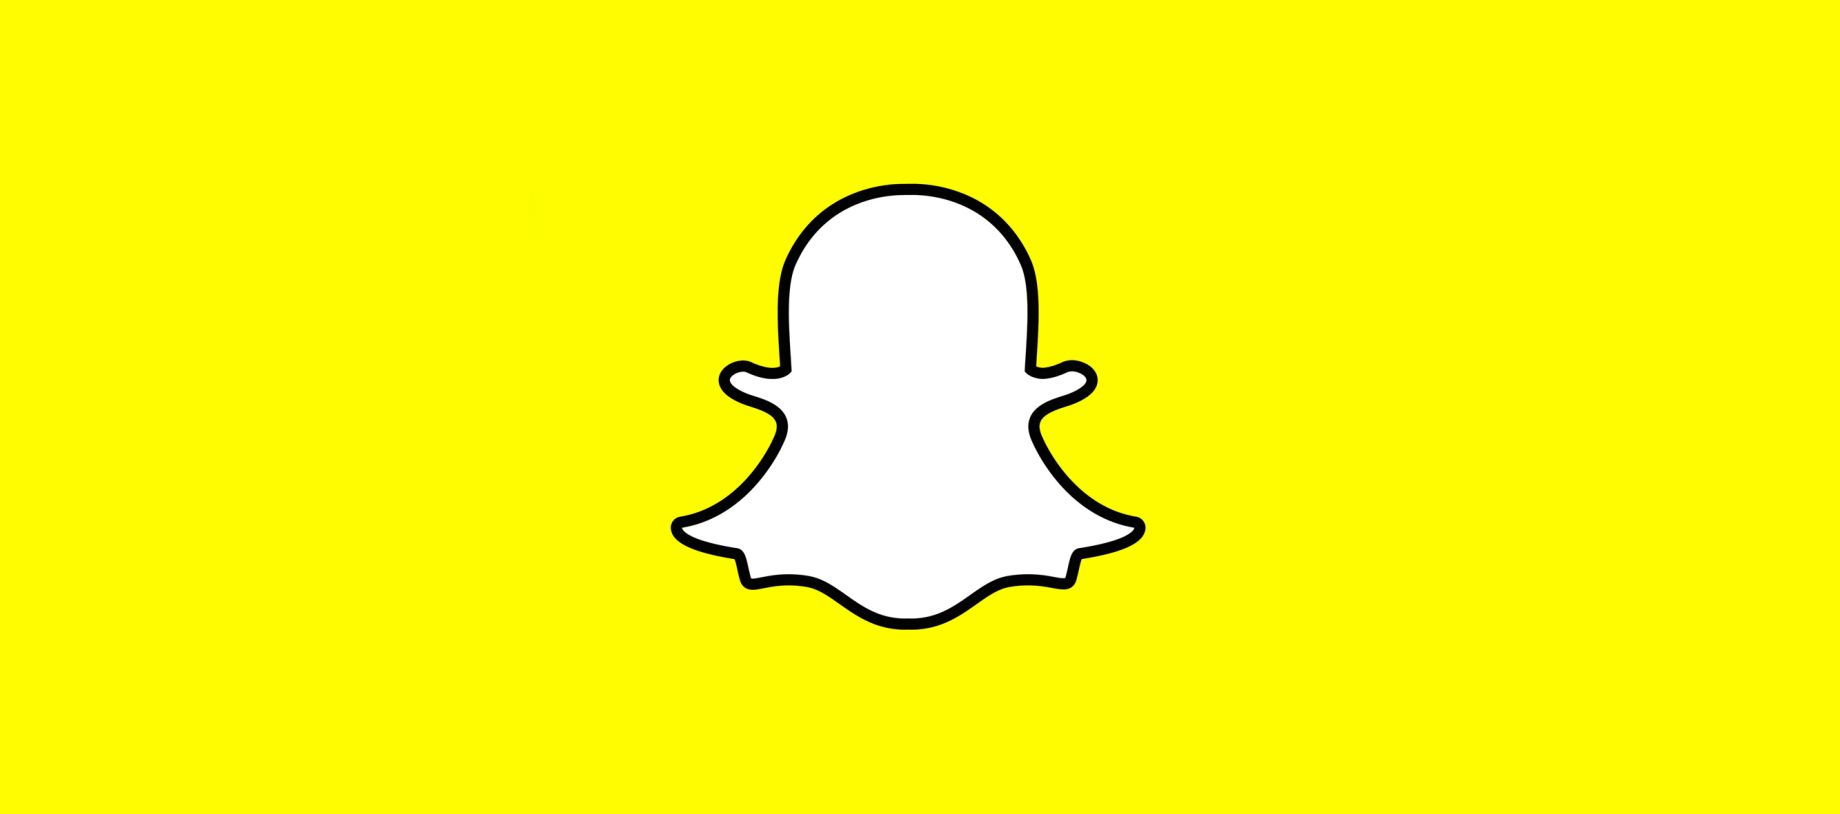 How To Use Snapchat A Small Business Guide Forbes Http Ceoblognation Com 2015 08 How To Use Snapchat A Snapchat Digital Marketing Strategy Snapchat Add